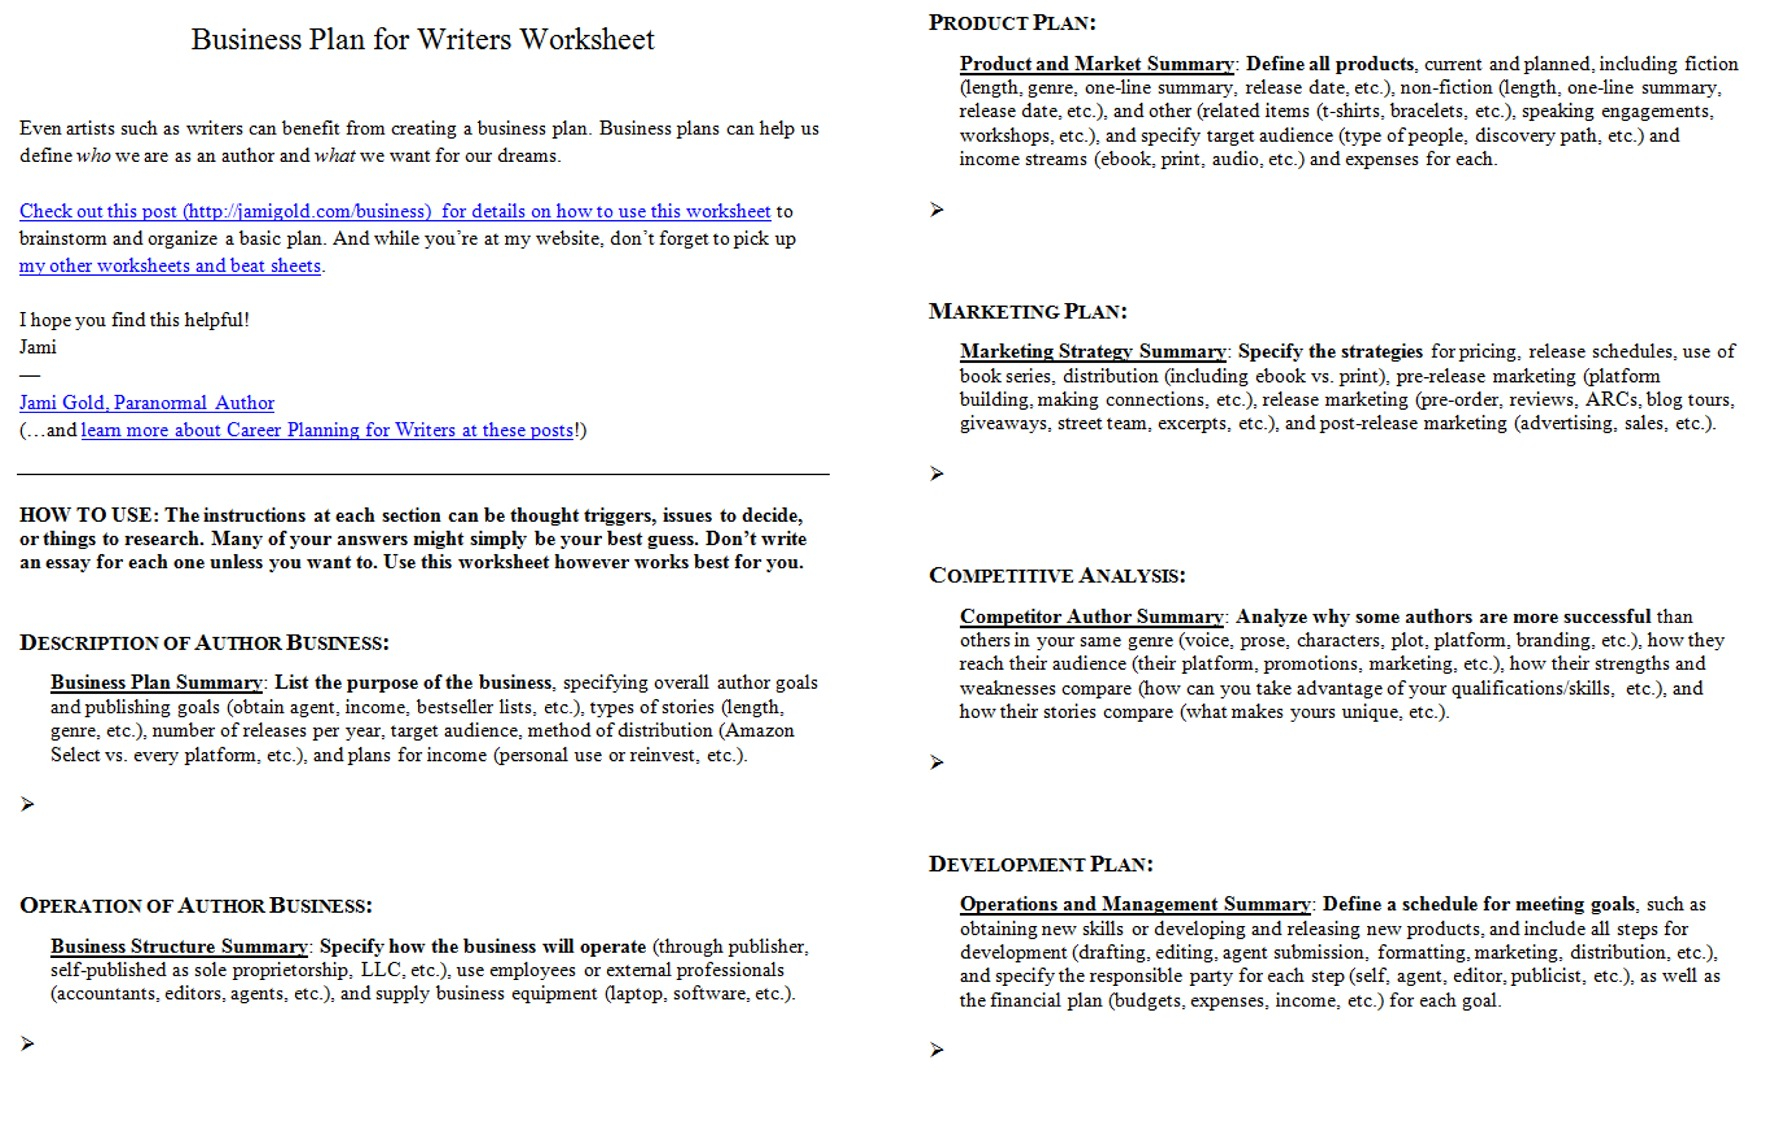 Weirdmailus  Nice Worksheets For Writers  Jami Gold Paranormal Author With Lovely Screen Shot Of Both Pages Of The Business Plan For Writers Worksheet With Appealing Opinion Writing Worksheets Also Work Energy Power Worksheet In Addition Fractions To Decimals Worksheet Pdf And Reading Comprehension Worksheets For Th Grade As Well As Lines And Angles Worksheets Additionally Exterior Angle Worksheet From Jamigoldcom With Weirdmailus  Lovely Worksheets For Writers  Jami Gold Paranormal Author With Appealing Screen Shot Of Both Pages Of The Business Plan For Writers Worksheet And Nice Opinion Writing Worksheets Also Work Energy Power Worksheet In Addition Fractions To Decimals Worksheet Pdf From Jamigoldcom